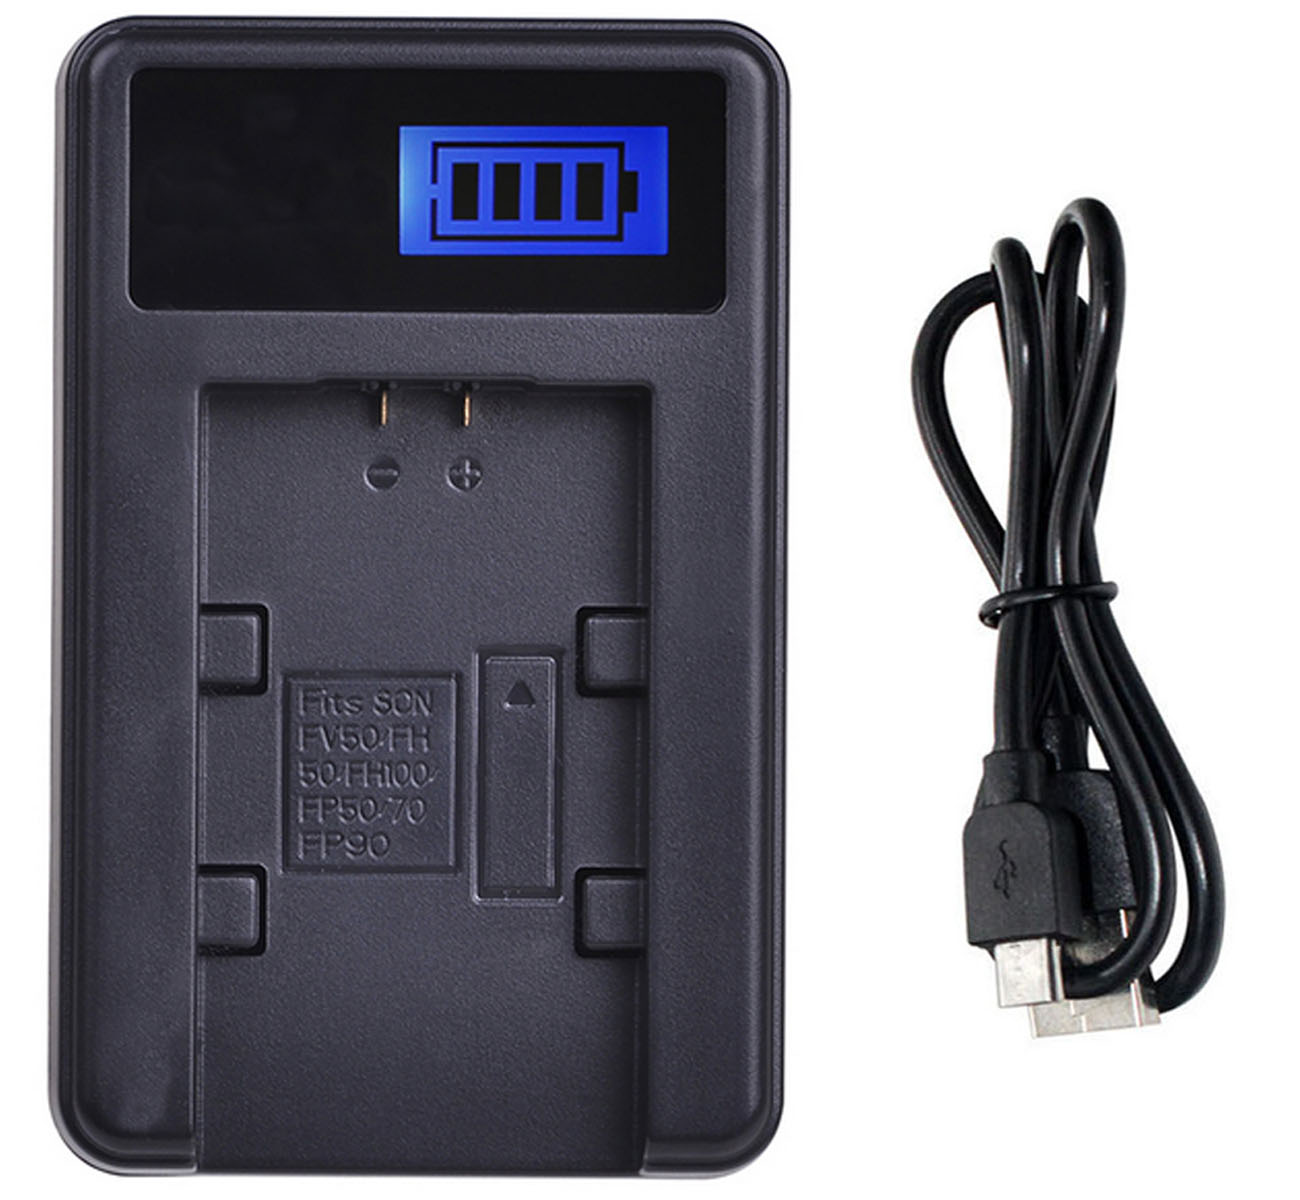 HDR-CX155 Handycam Camcorder HDR-CX115 AC Power Adapter Charger for Sony HDR-CX105 HDR-CX116 HDR-CX106